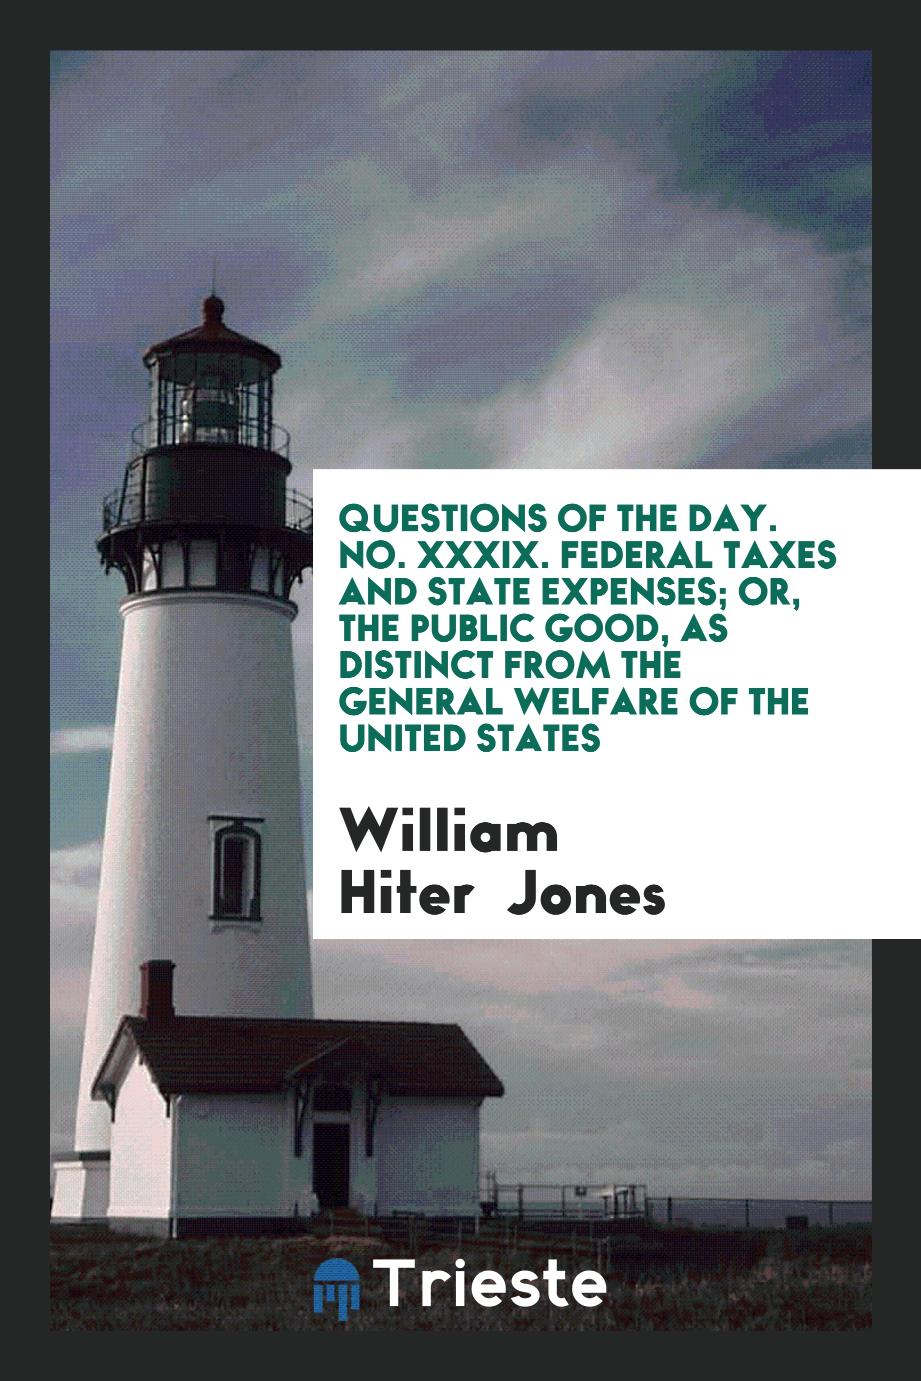 Questions of the Day. No. XXXIX. Federal Taxes and State Expenses; Or, the Public Good, as Distinct from the General Welfare of the United States